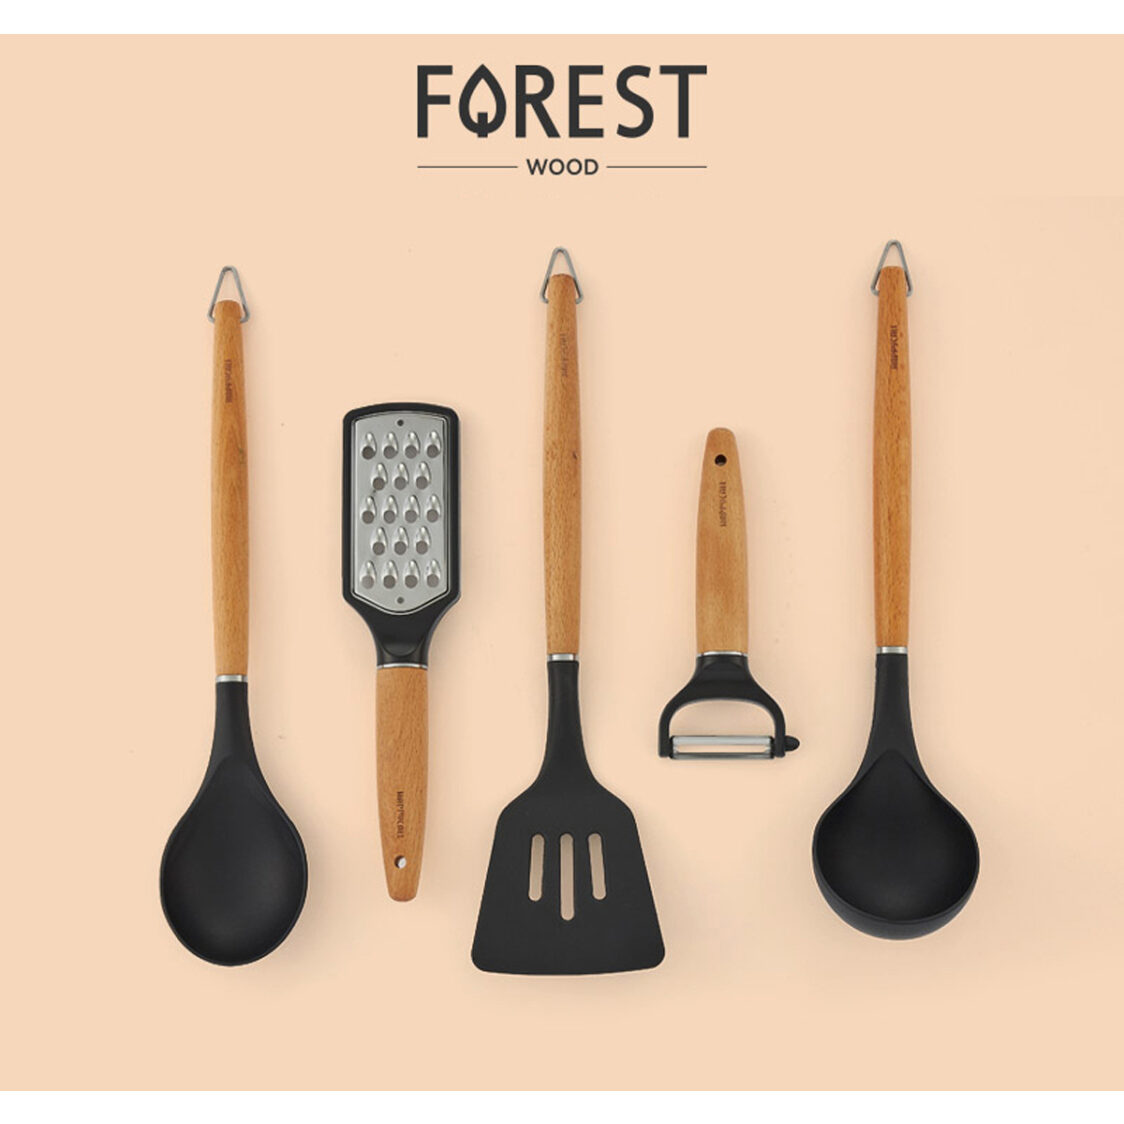 Happycall Forest Wood 5-Pc Cooking Tools Set 4900-0077